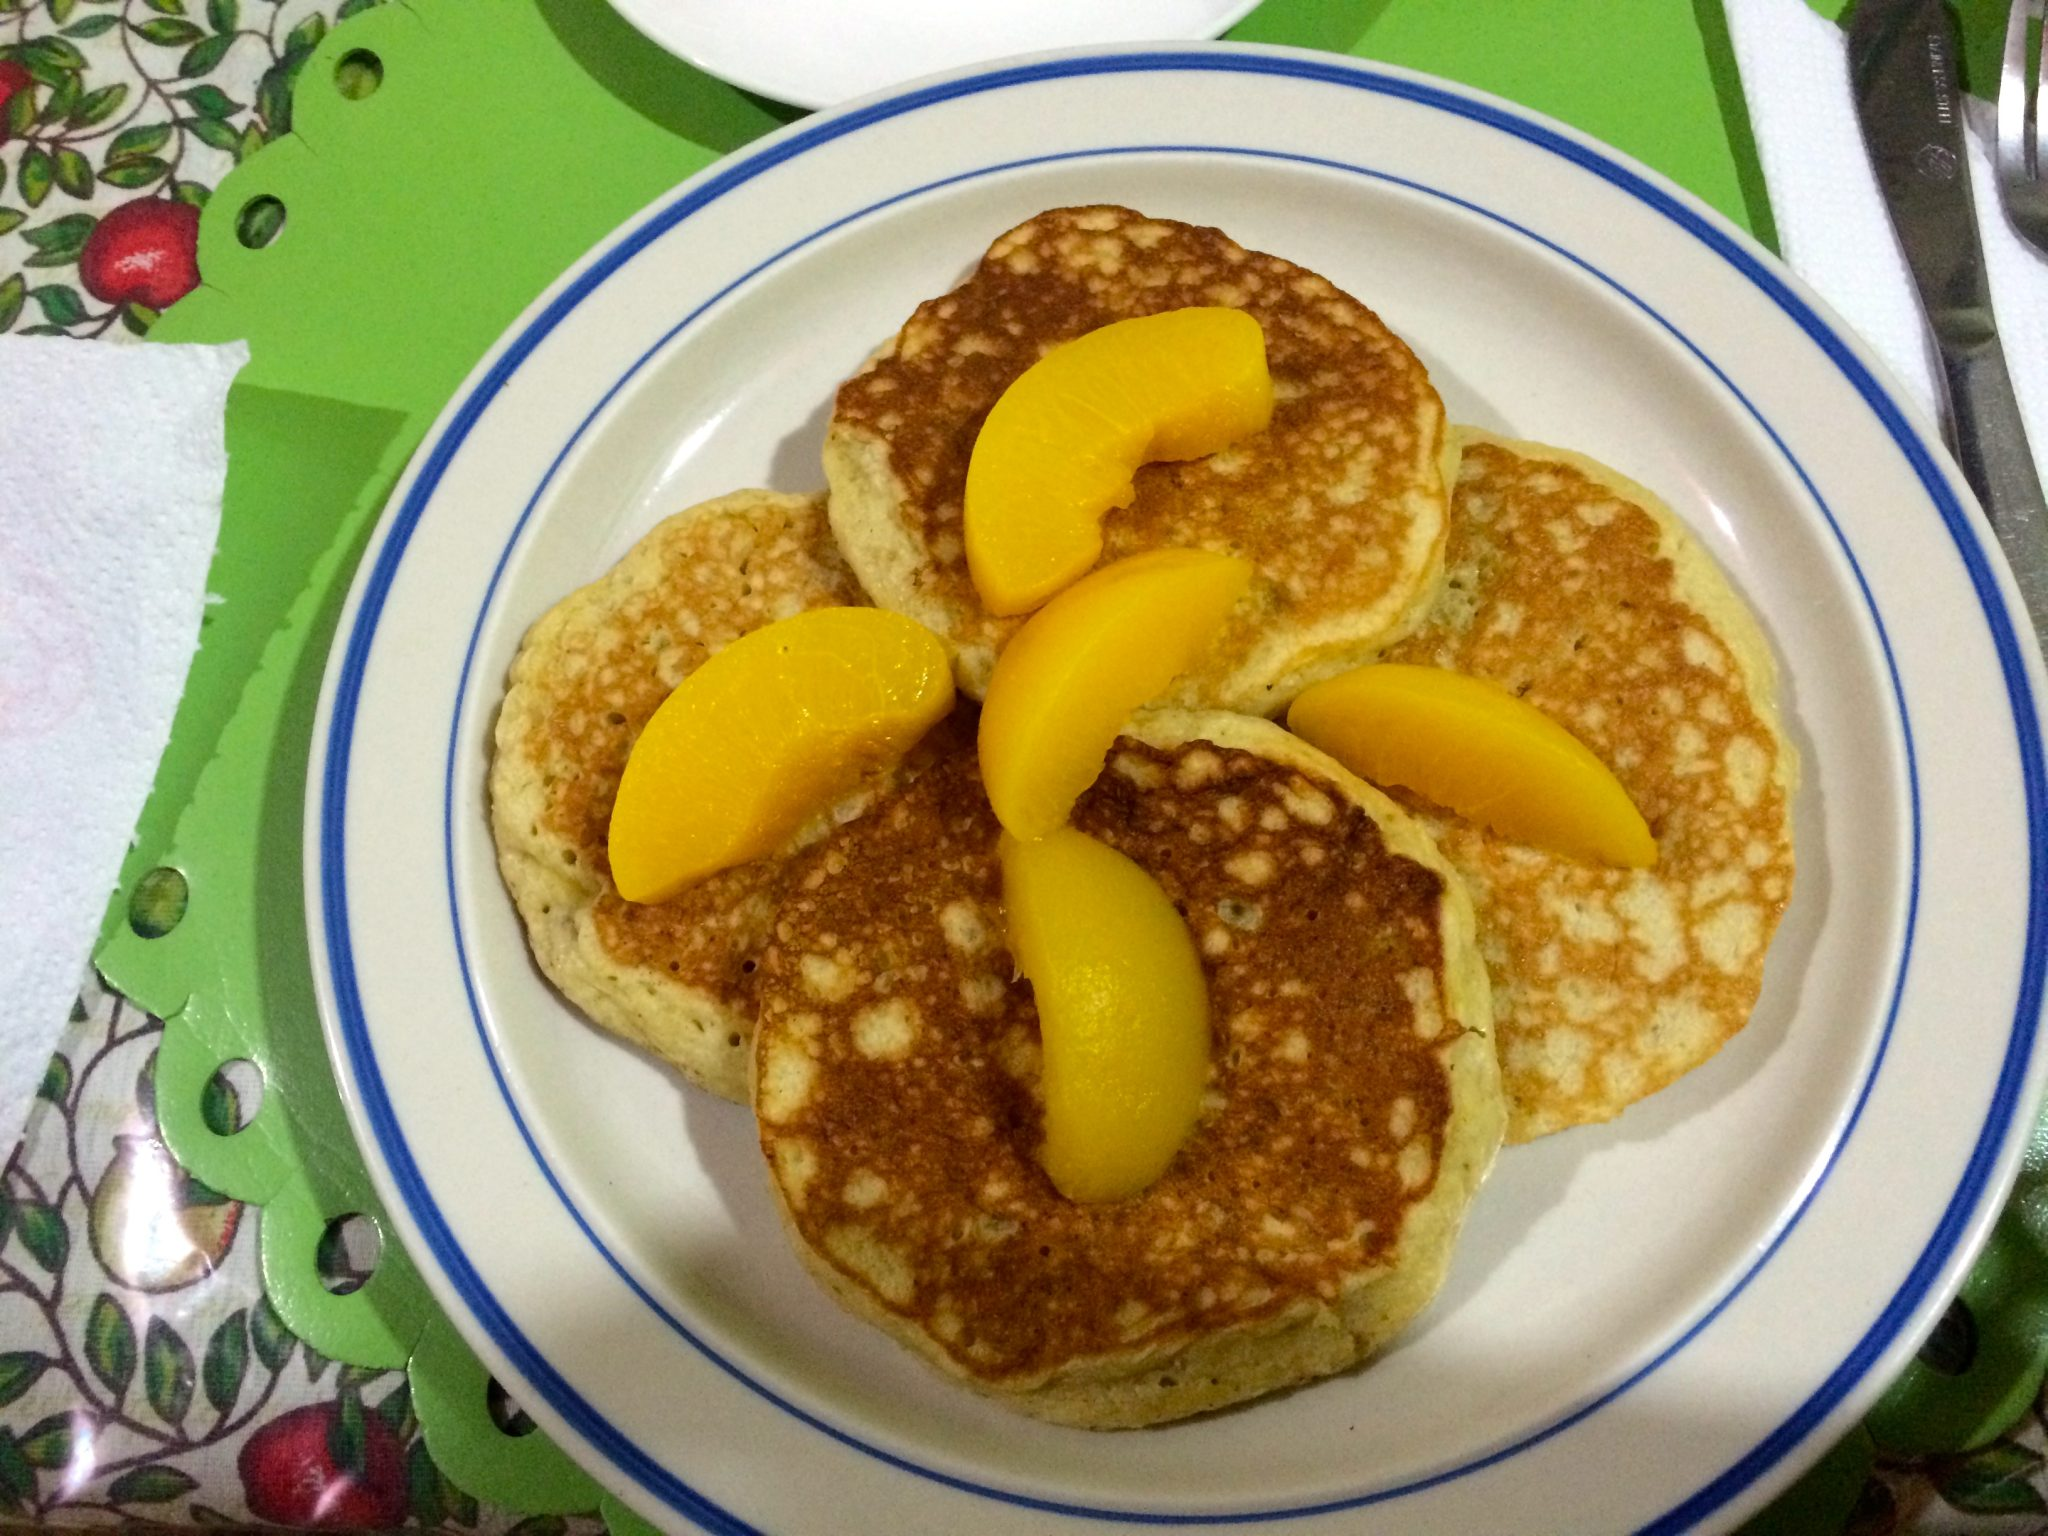 Yummy pancakes to start off the day!